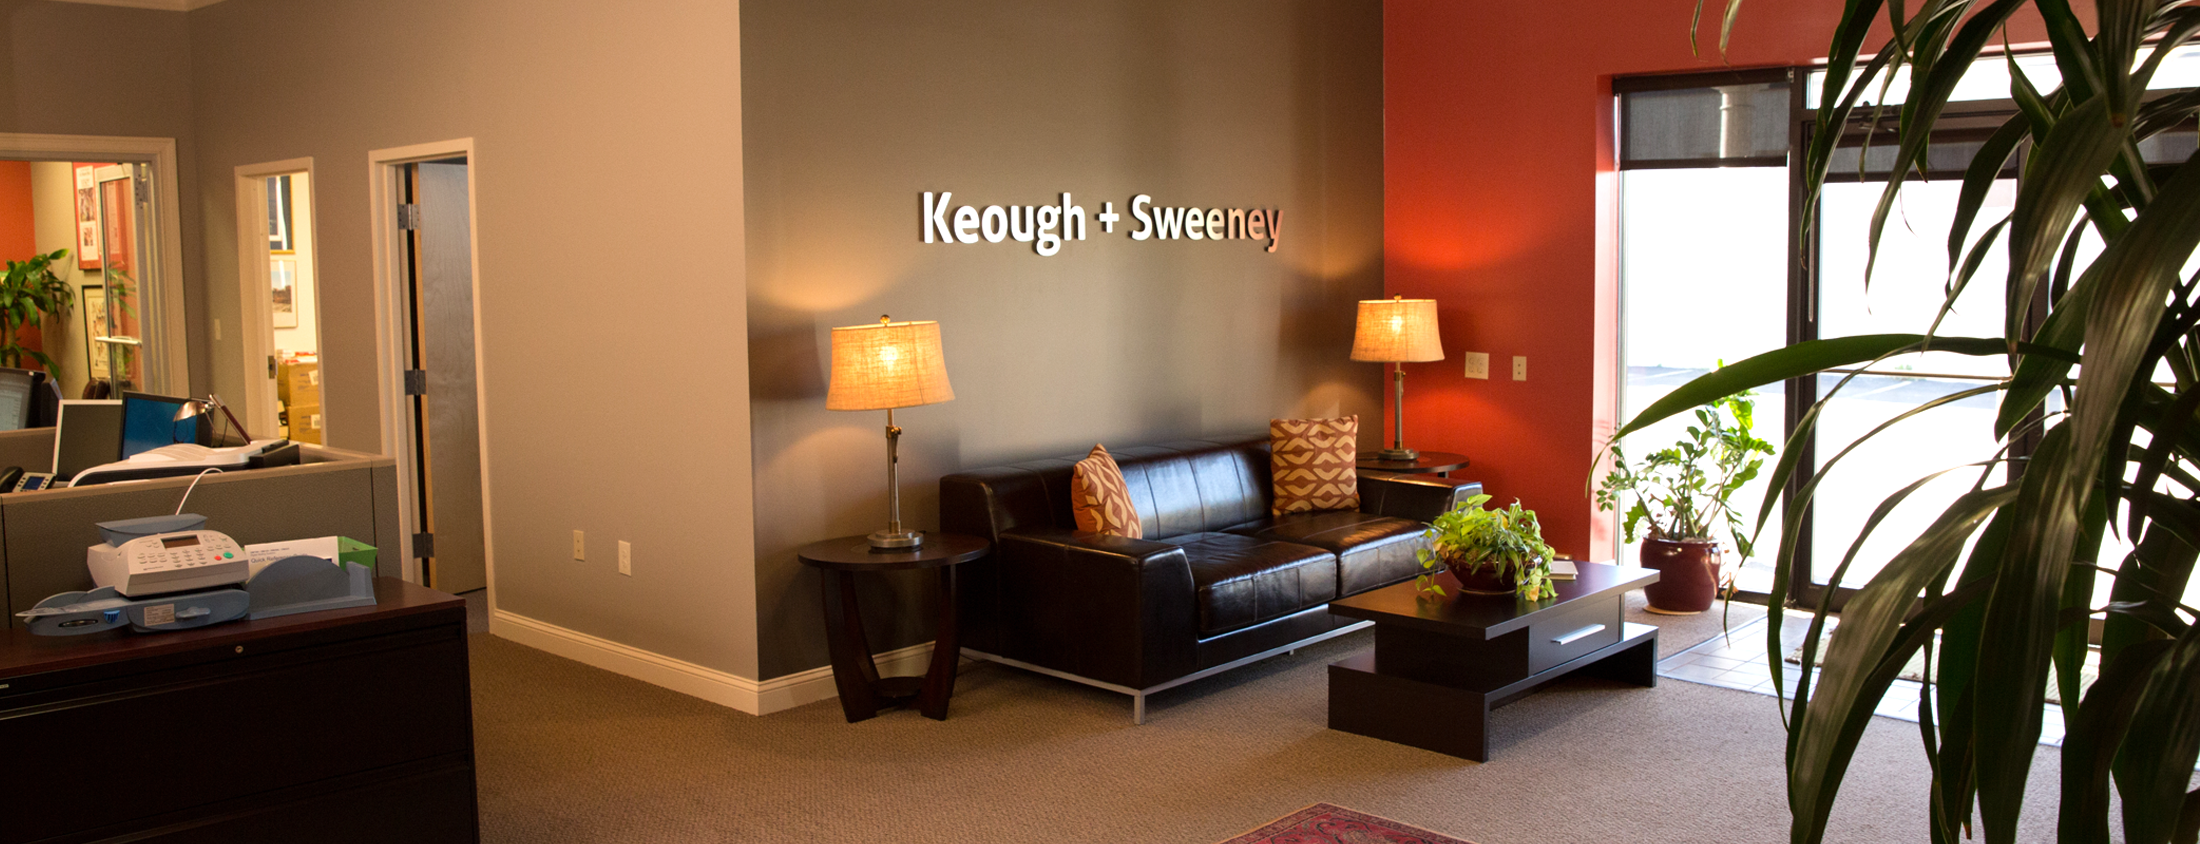 Keough + Sweeney, divorce, business, personal injury, utility and criminal lawyers in RI and MA.